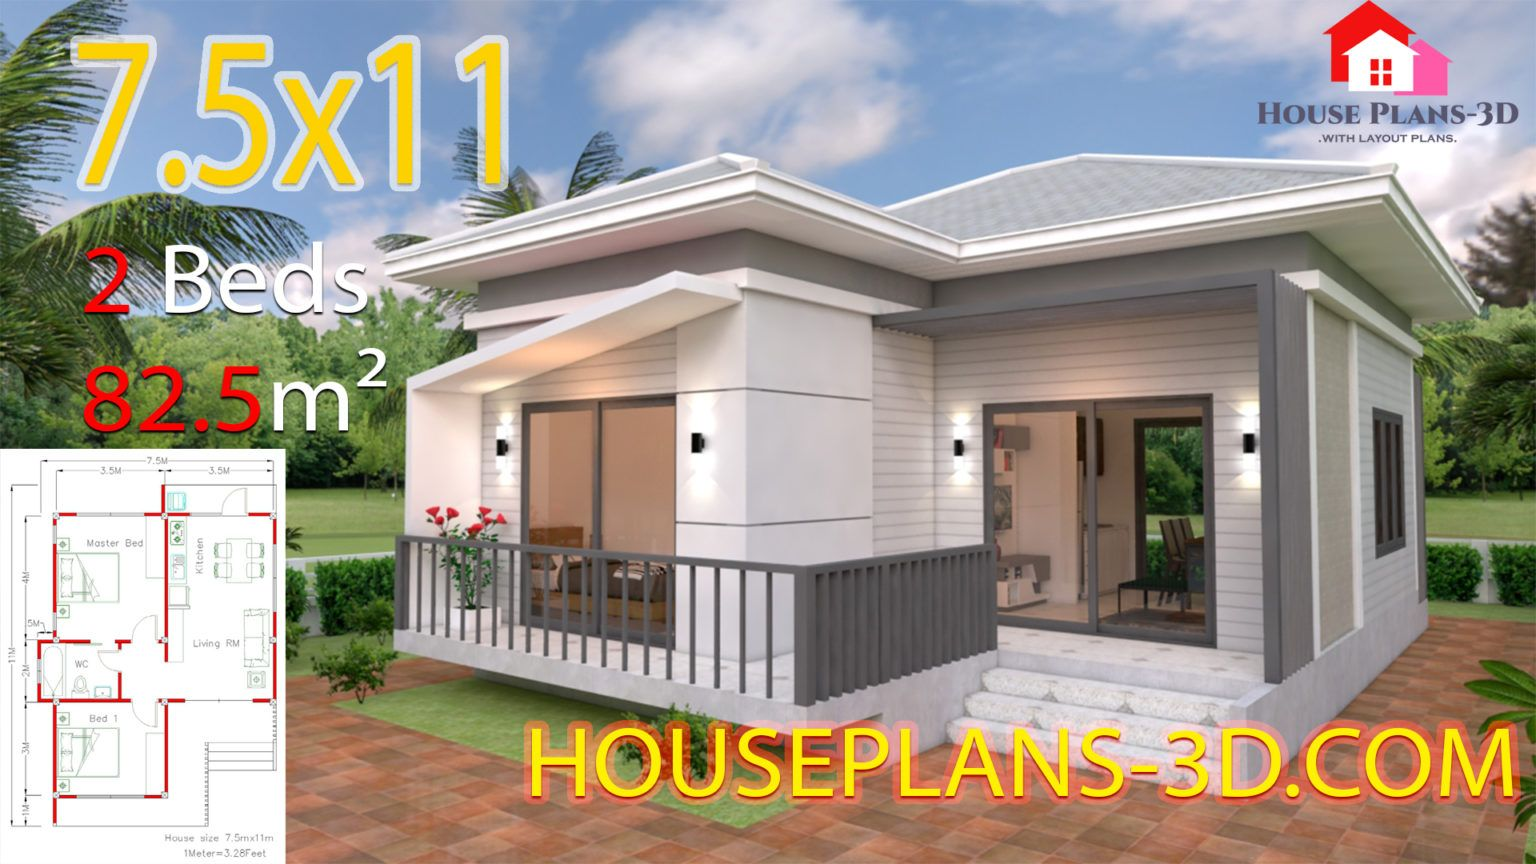 Find Your Dream House House Plans 3d House Plans Small House Design Plans House Design